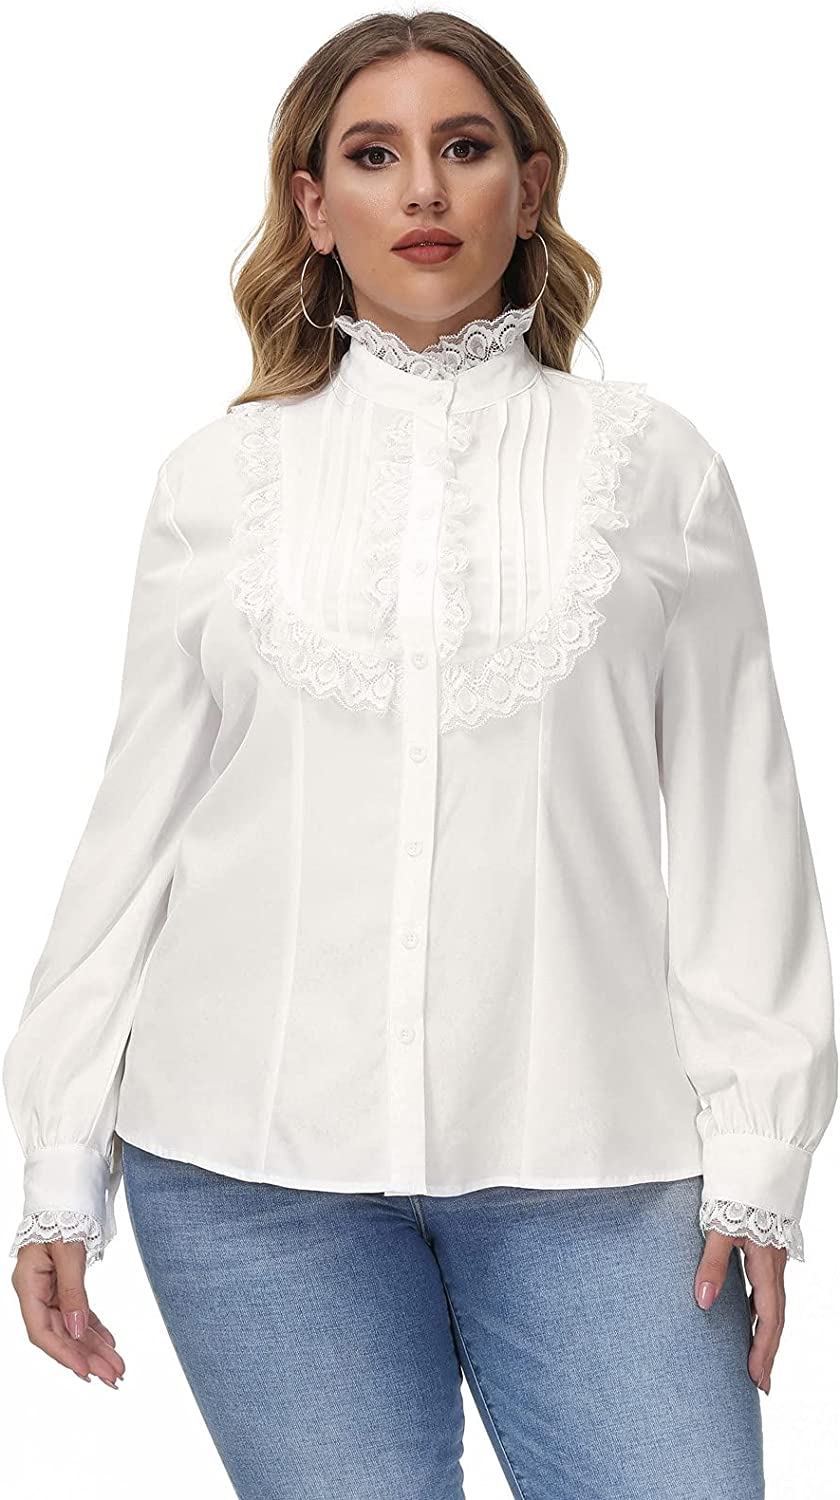 Steampunk Plus Size Clothing & Costumes Victorian Blouse Womens Gothic Lolita Plus Size Long Sleeve Retro Ruffle Steampunk Tops  AT vintagedancer.com